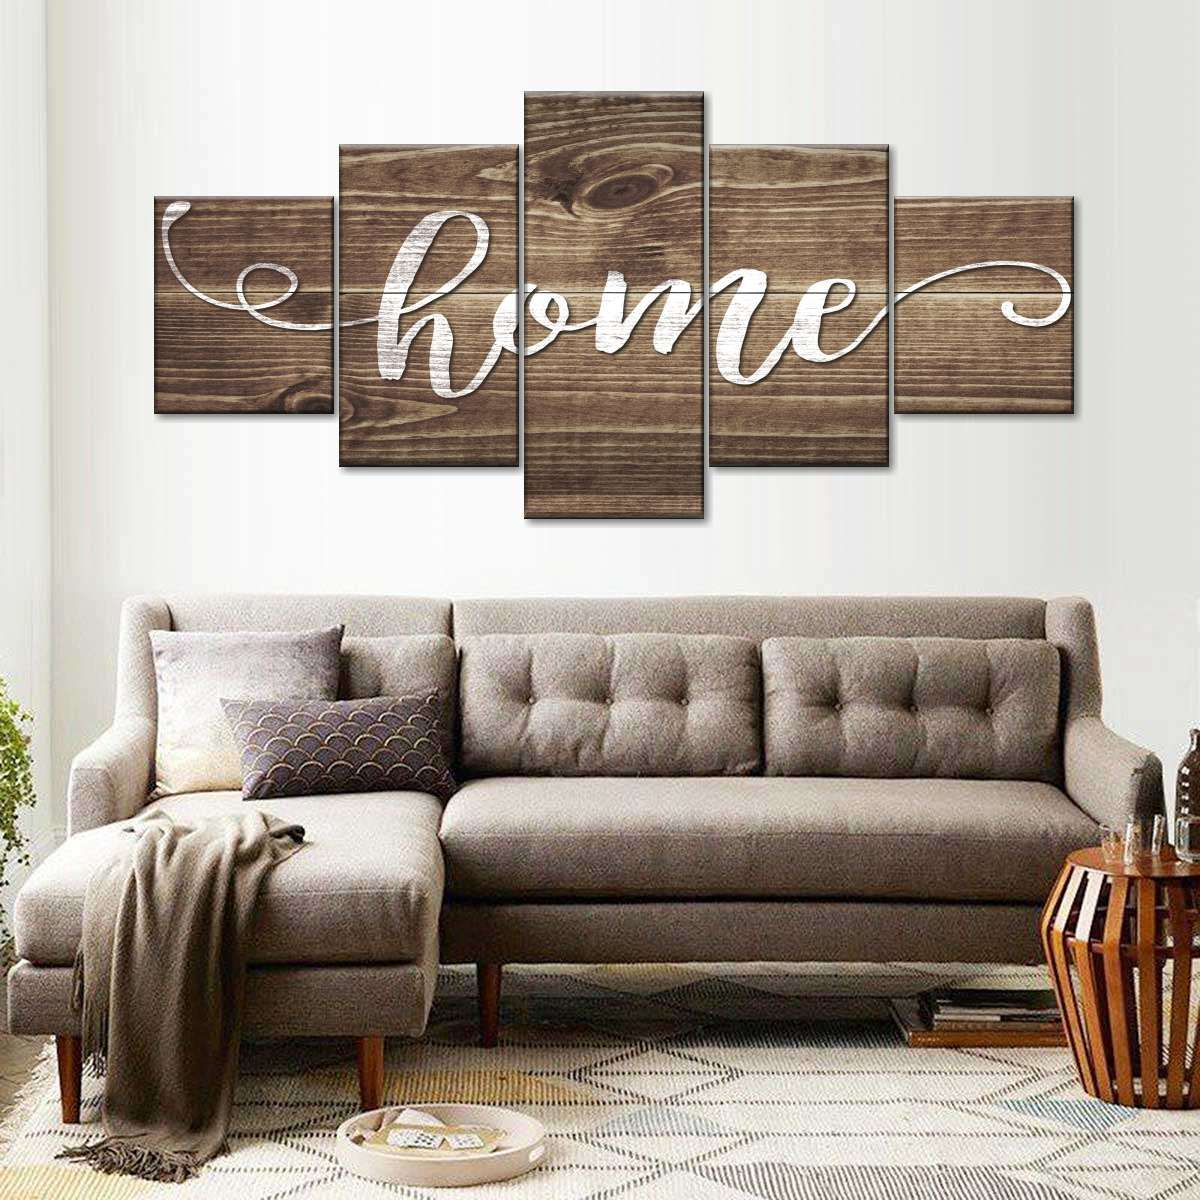 Home Multi Panel Canvas Wall Art In 2021 Family Room Wall Decor Big Wall Decor Dining Room Wall Decor